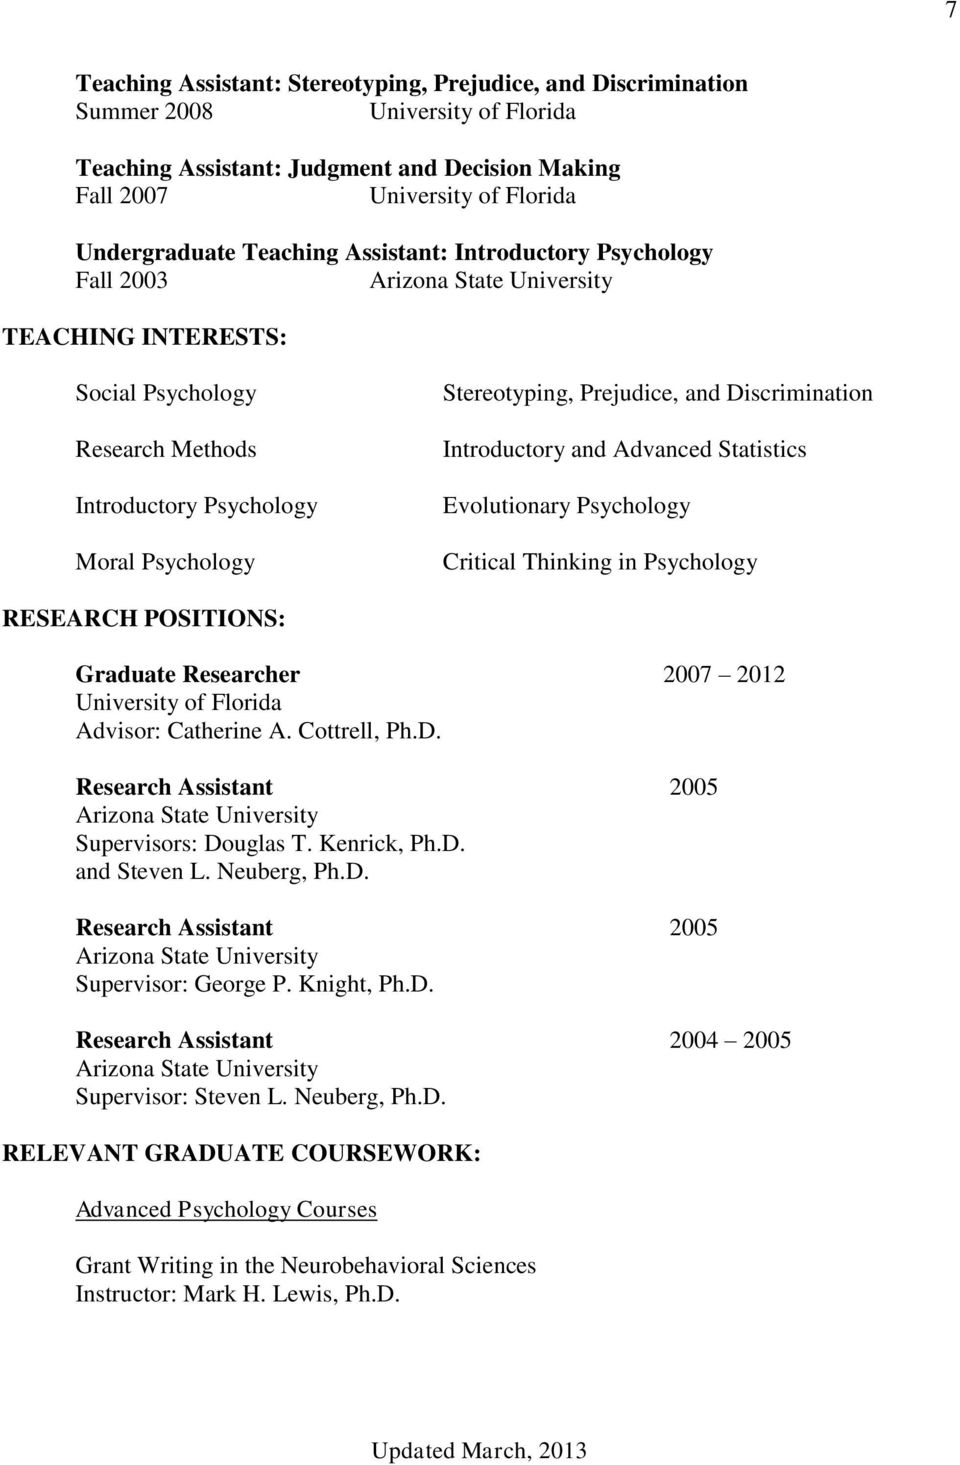 Psychology Critical Thinking in Psychology RESEARCH POSITIONS: Graduate Researcher 2007 2012 Advisor: Catherine A. Cottrell, Ph.D. Research Assistant 2005 Supervisors: Douglas T. Kenrick, Ph.D. and Steven L.